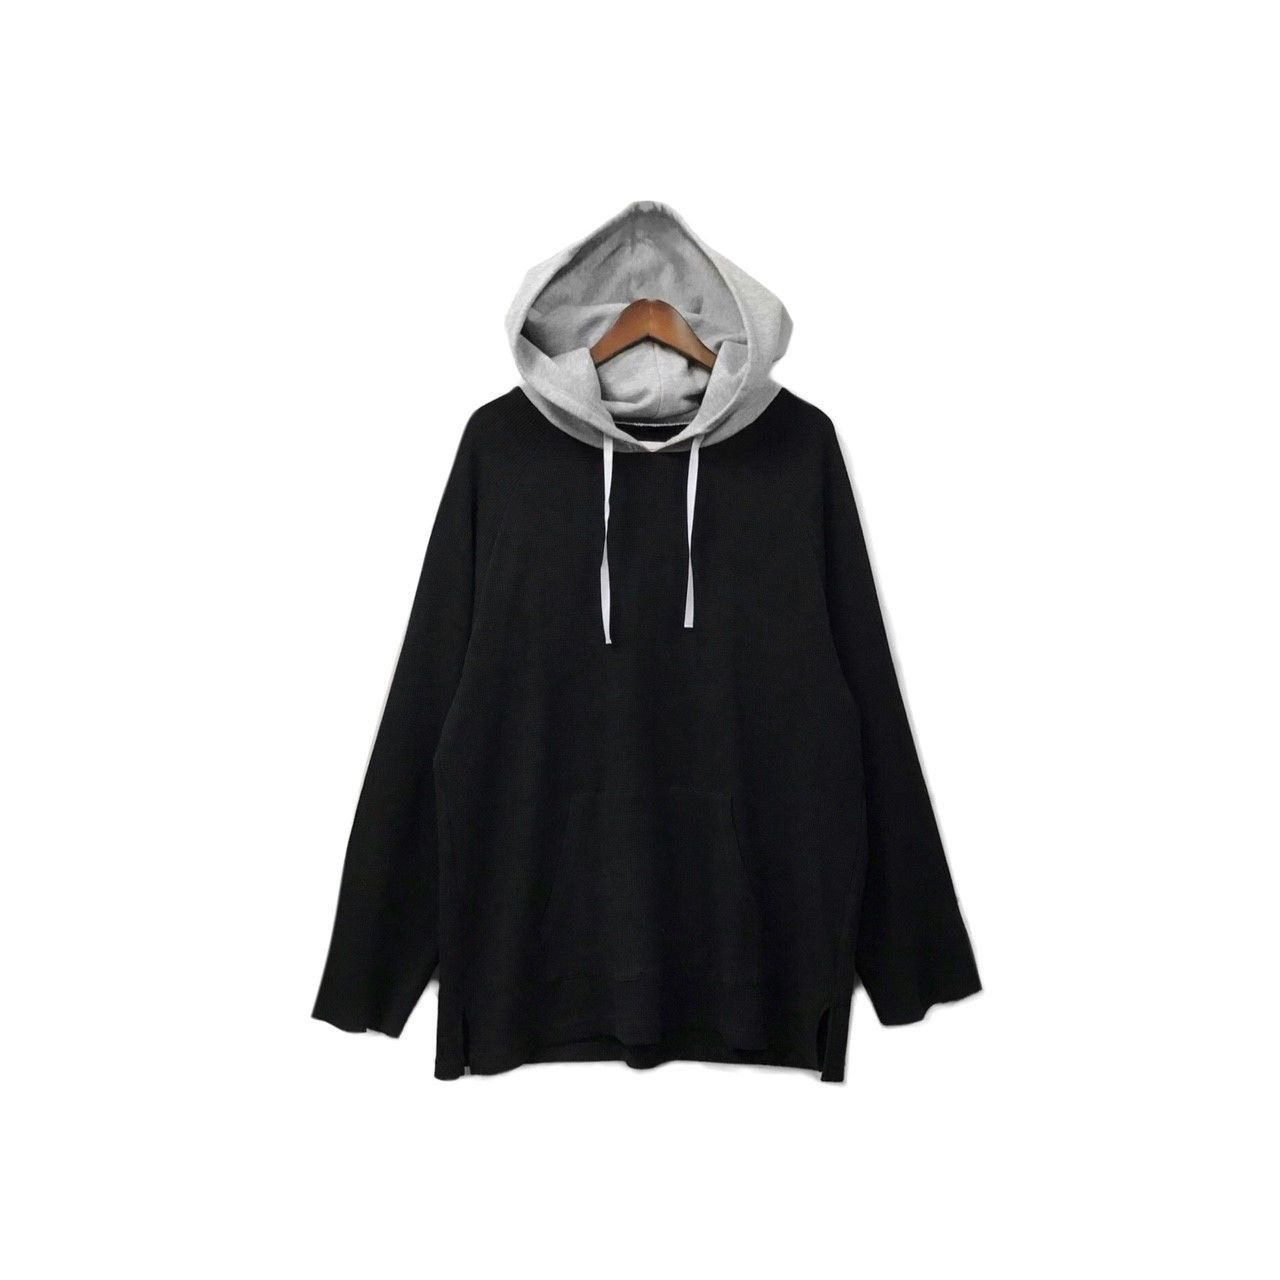 FC IRIE - Switching Thermal Parka / Black・Gray ?11000+tax